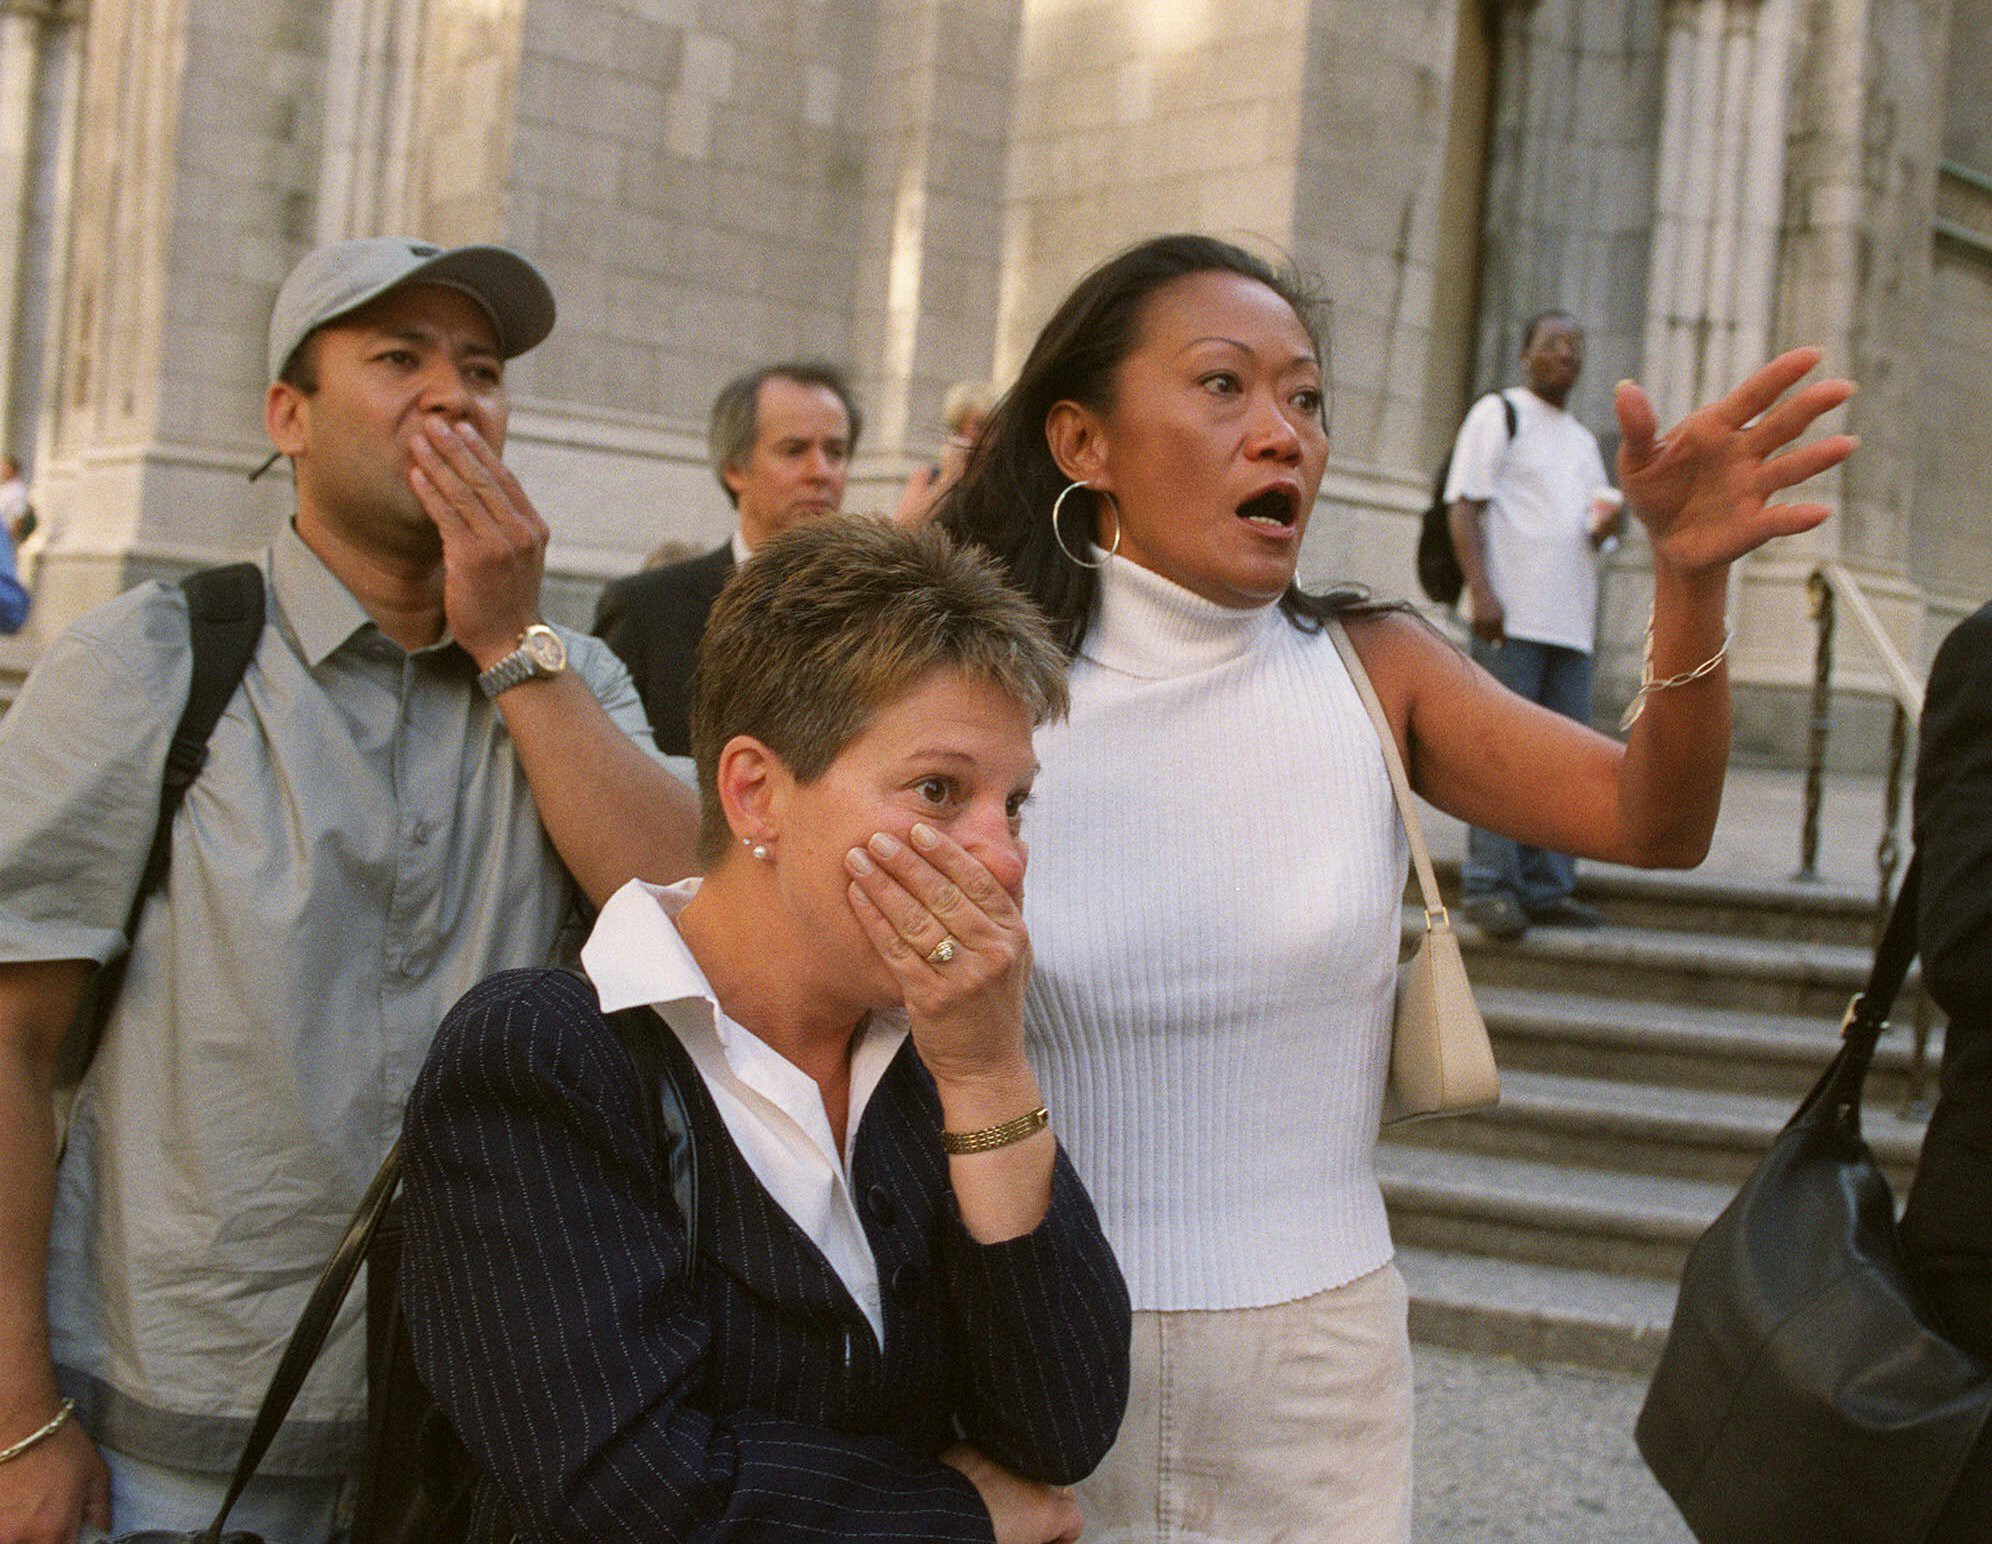 Photos: What we looked like watching 9/11 as it happened